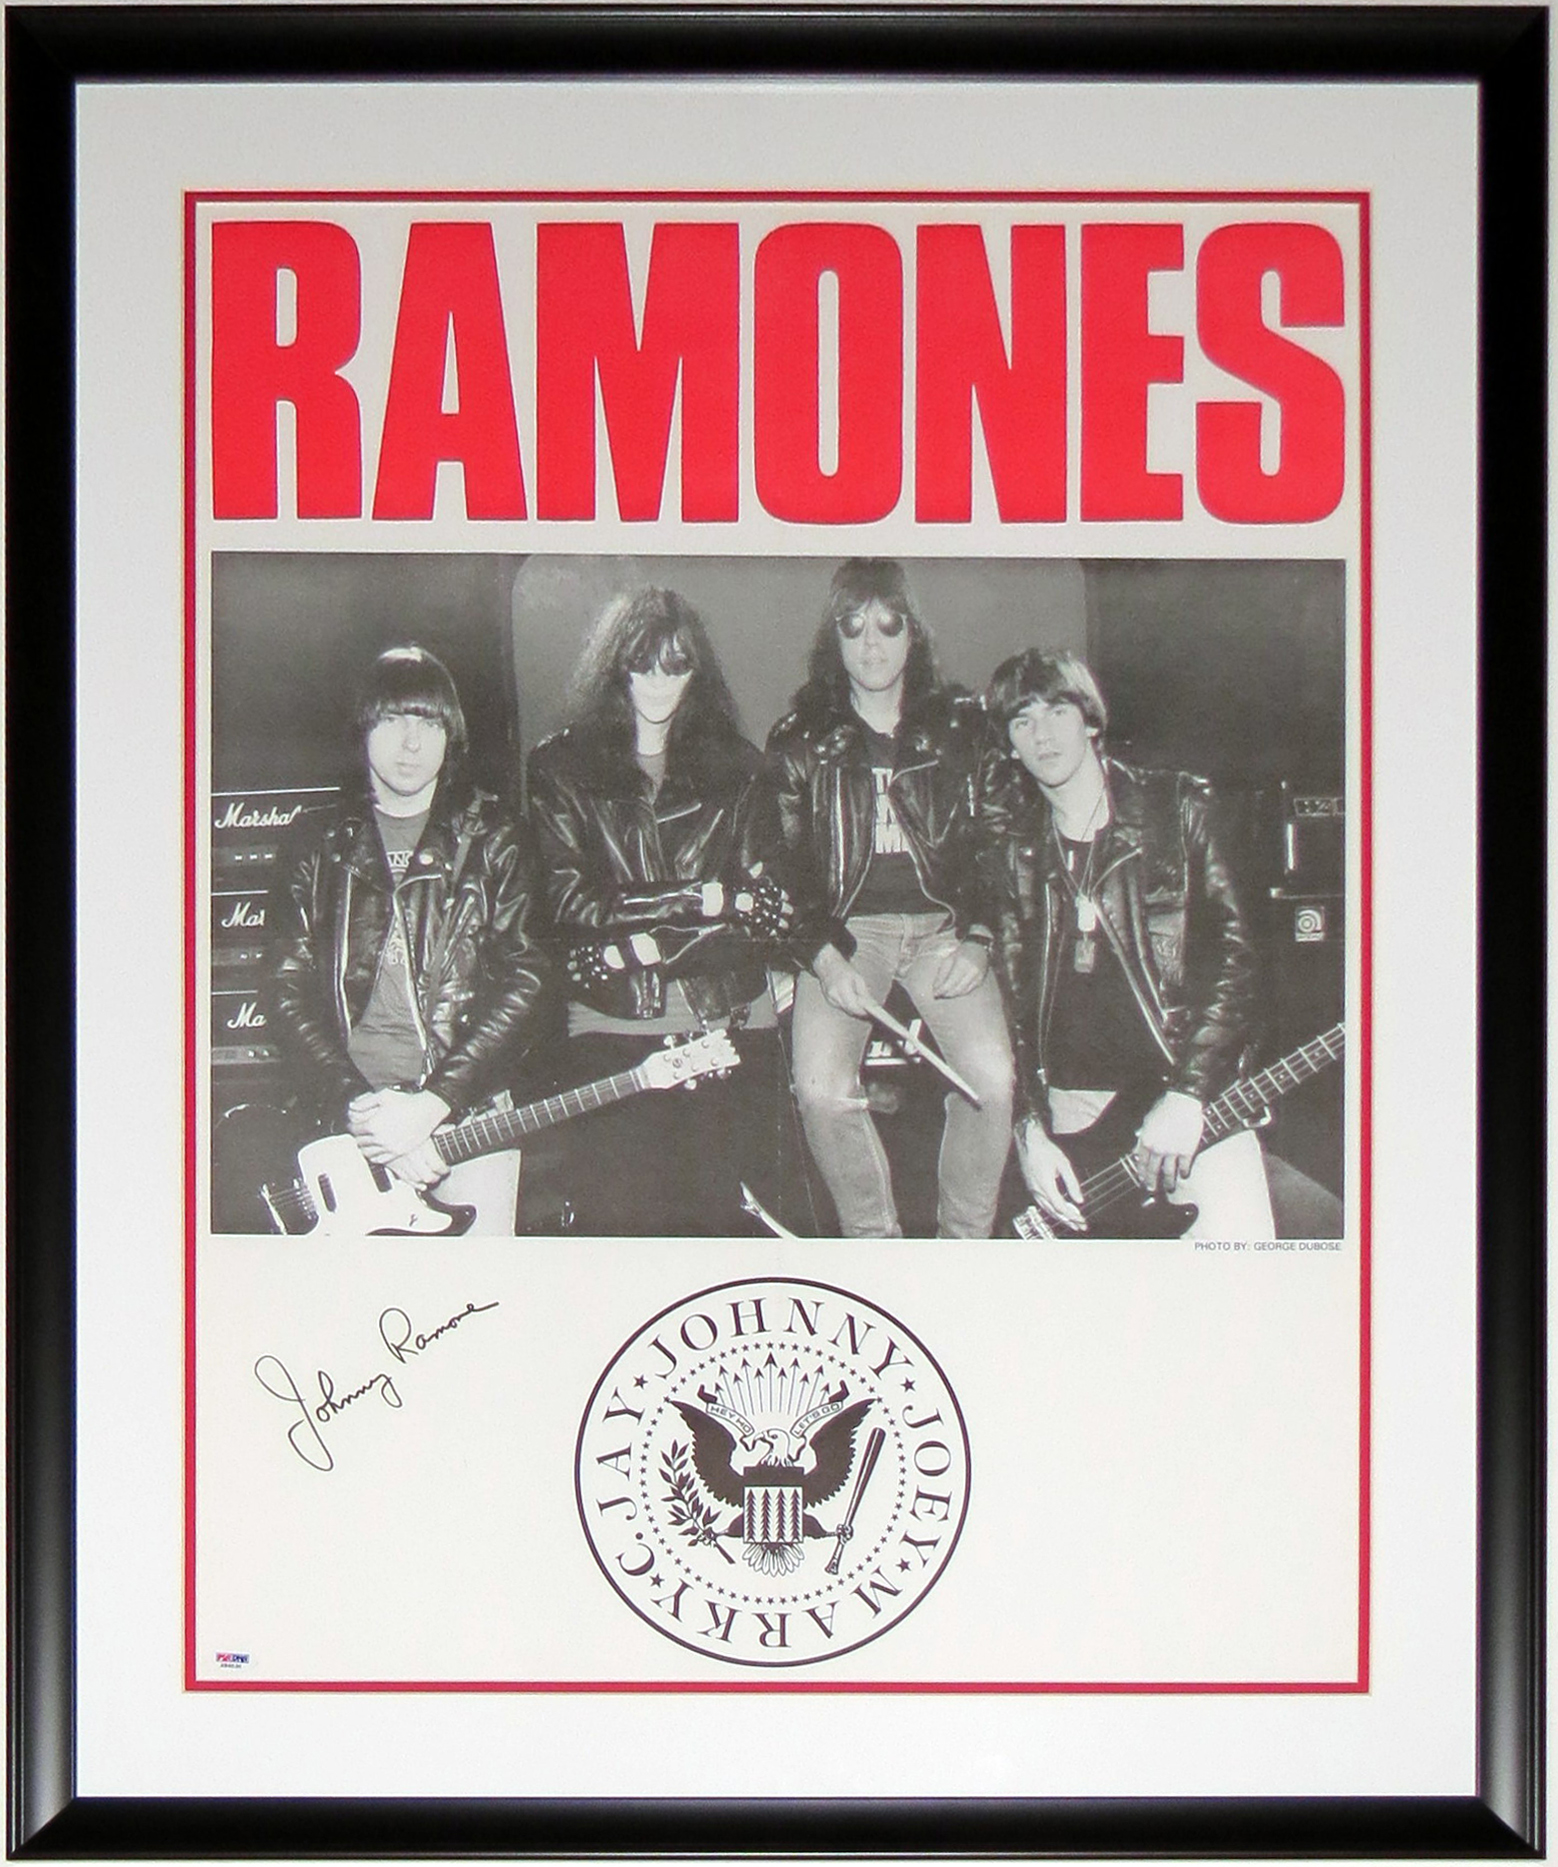 Johnny Ramone Signed 20x24 The Ramones Tour Poster - PSA DNA COA Authenticated - Professionally Framed